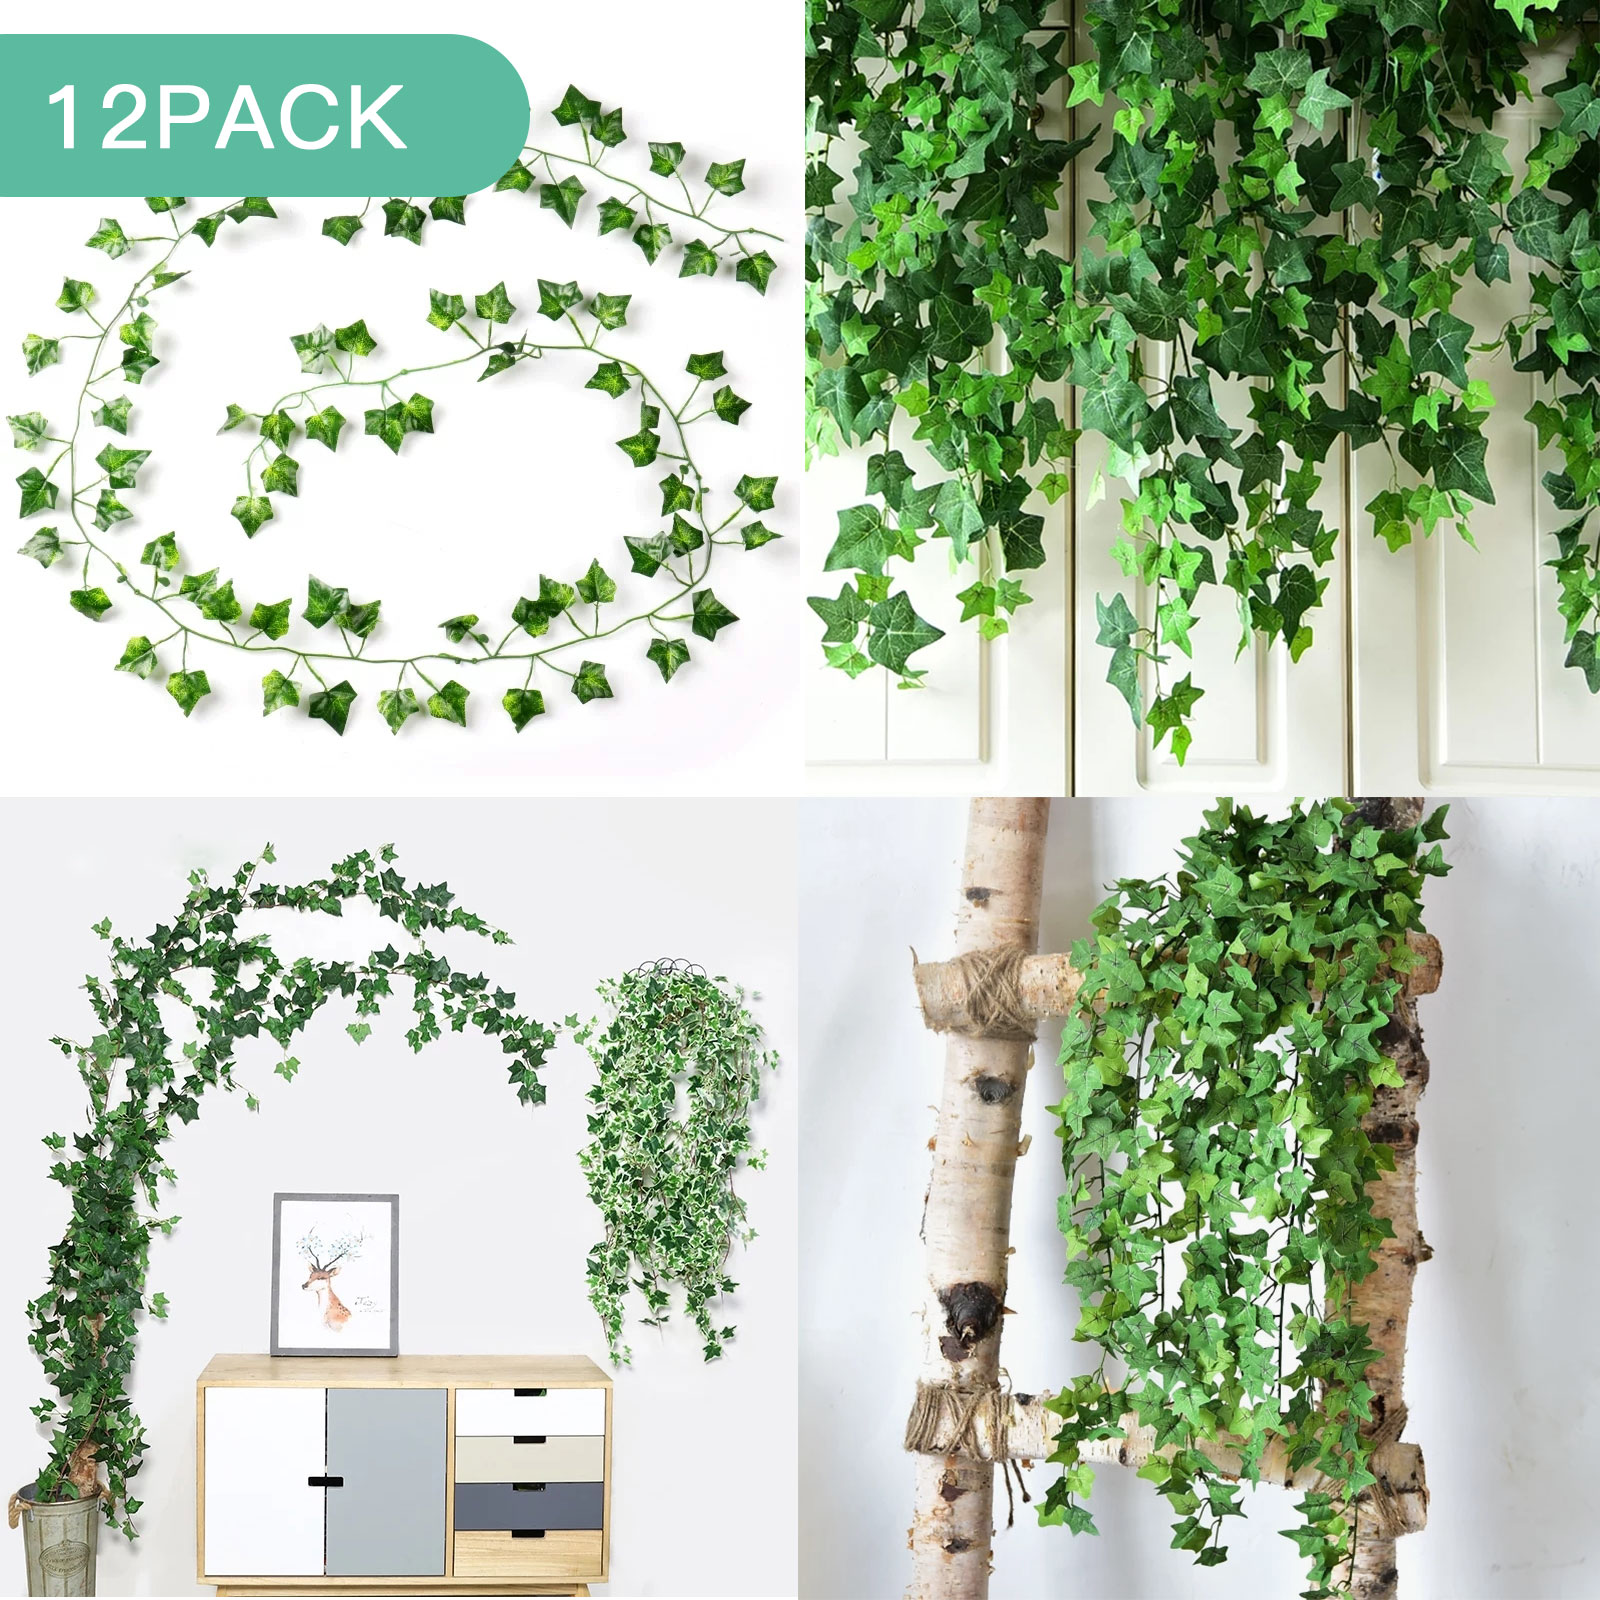 Tsv 12 Strands Artificial Ivy Leaf Plants Vine Hanging Garland Fake Leaves Green Chain Wall Home Room Garden Wedding Garland Outside Decoration 86 4 Ft Parthenocissus Tricuspidata Walmart Com Walmart Com